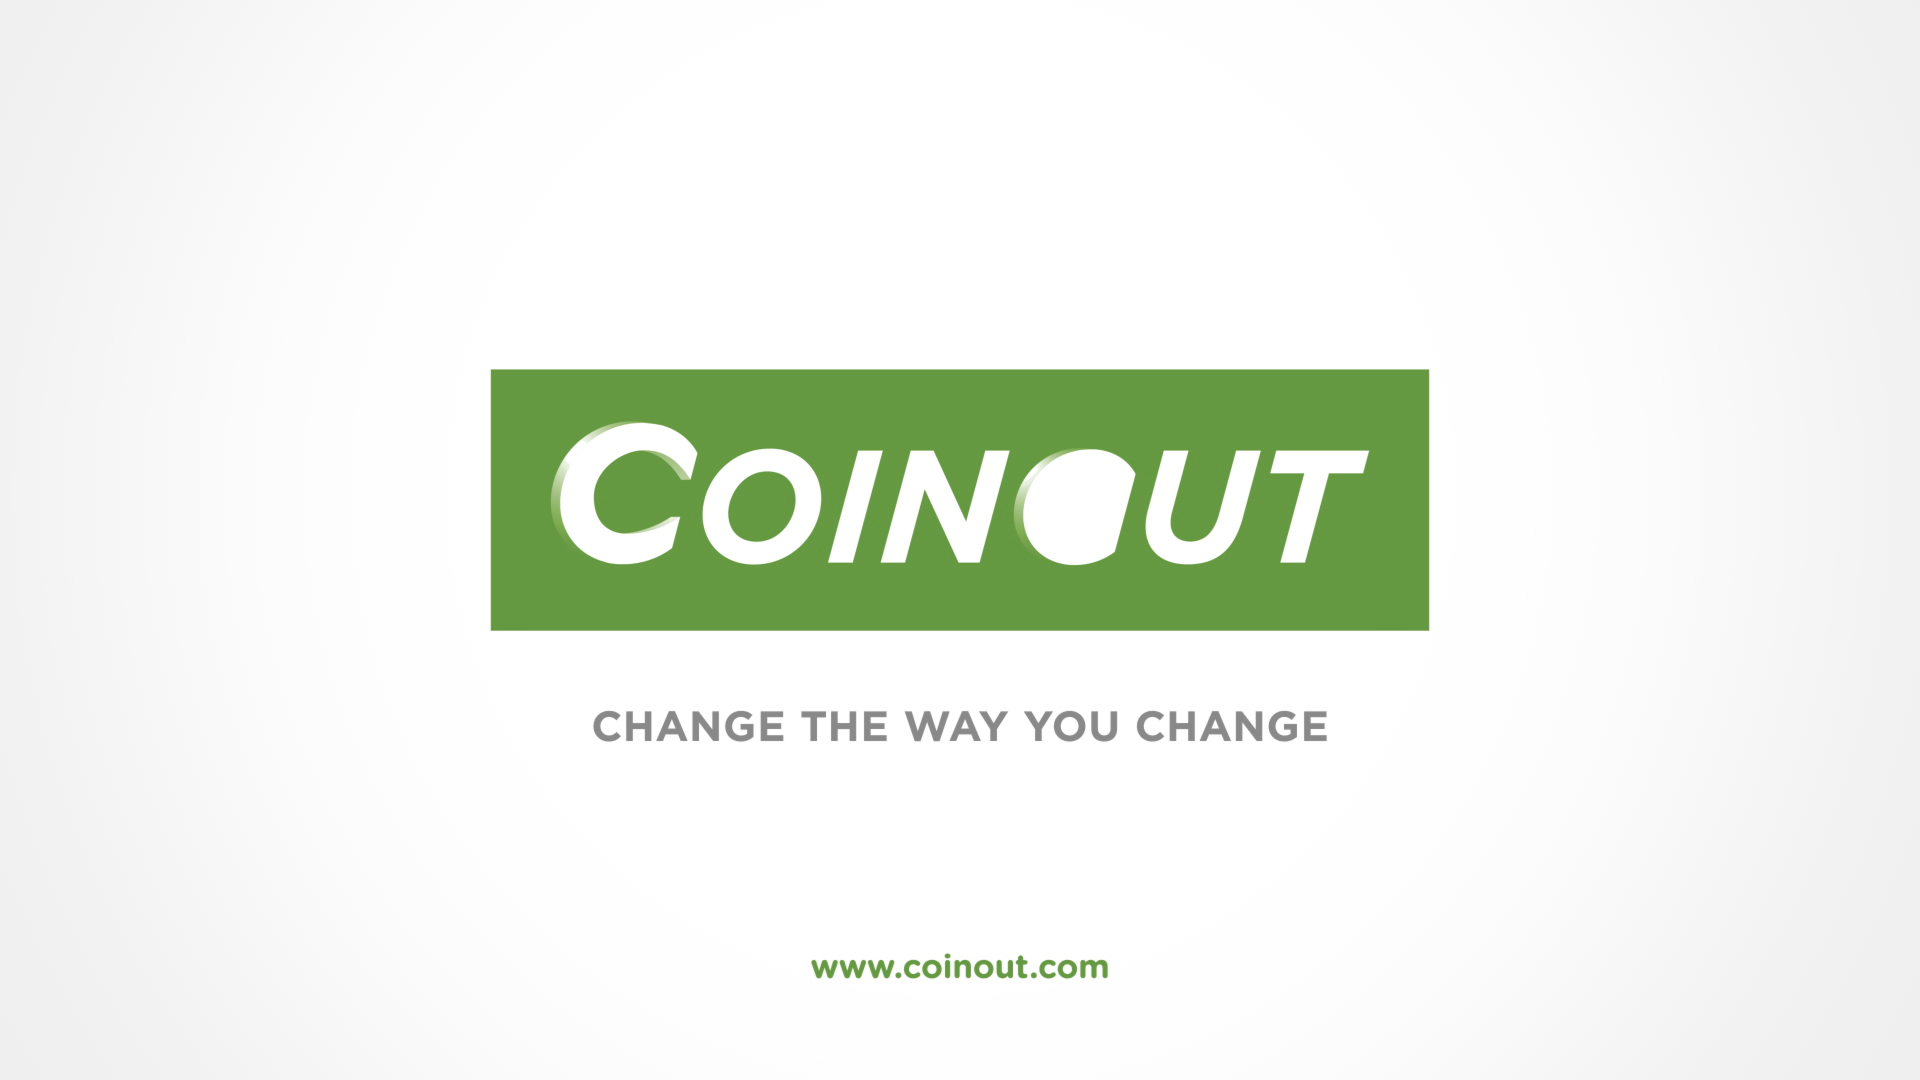 Coinout_016.png